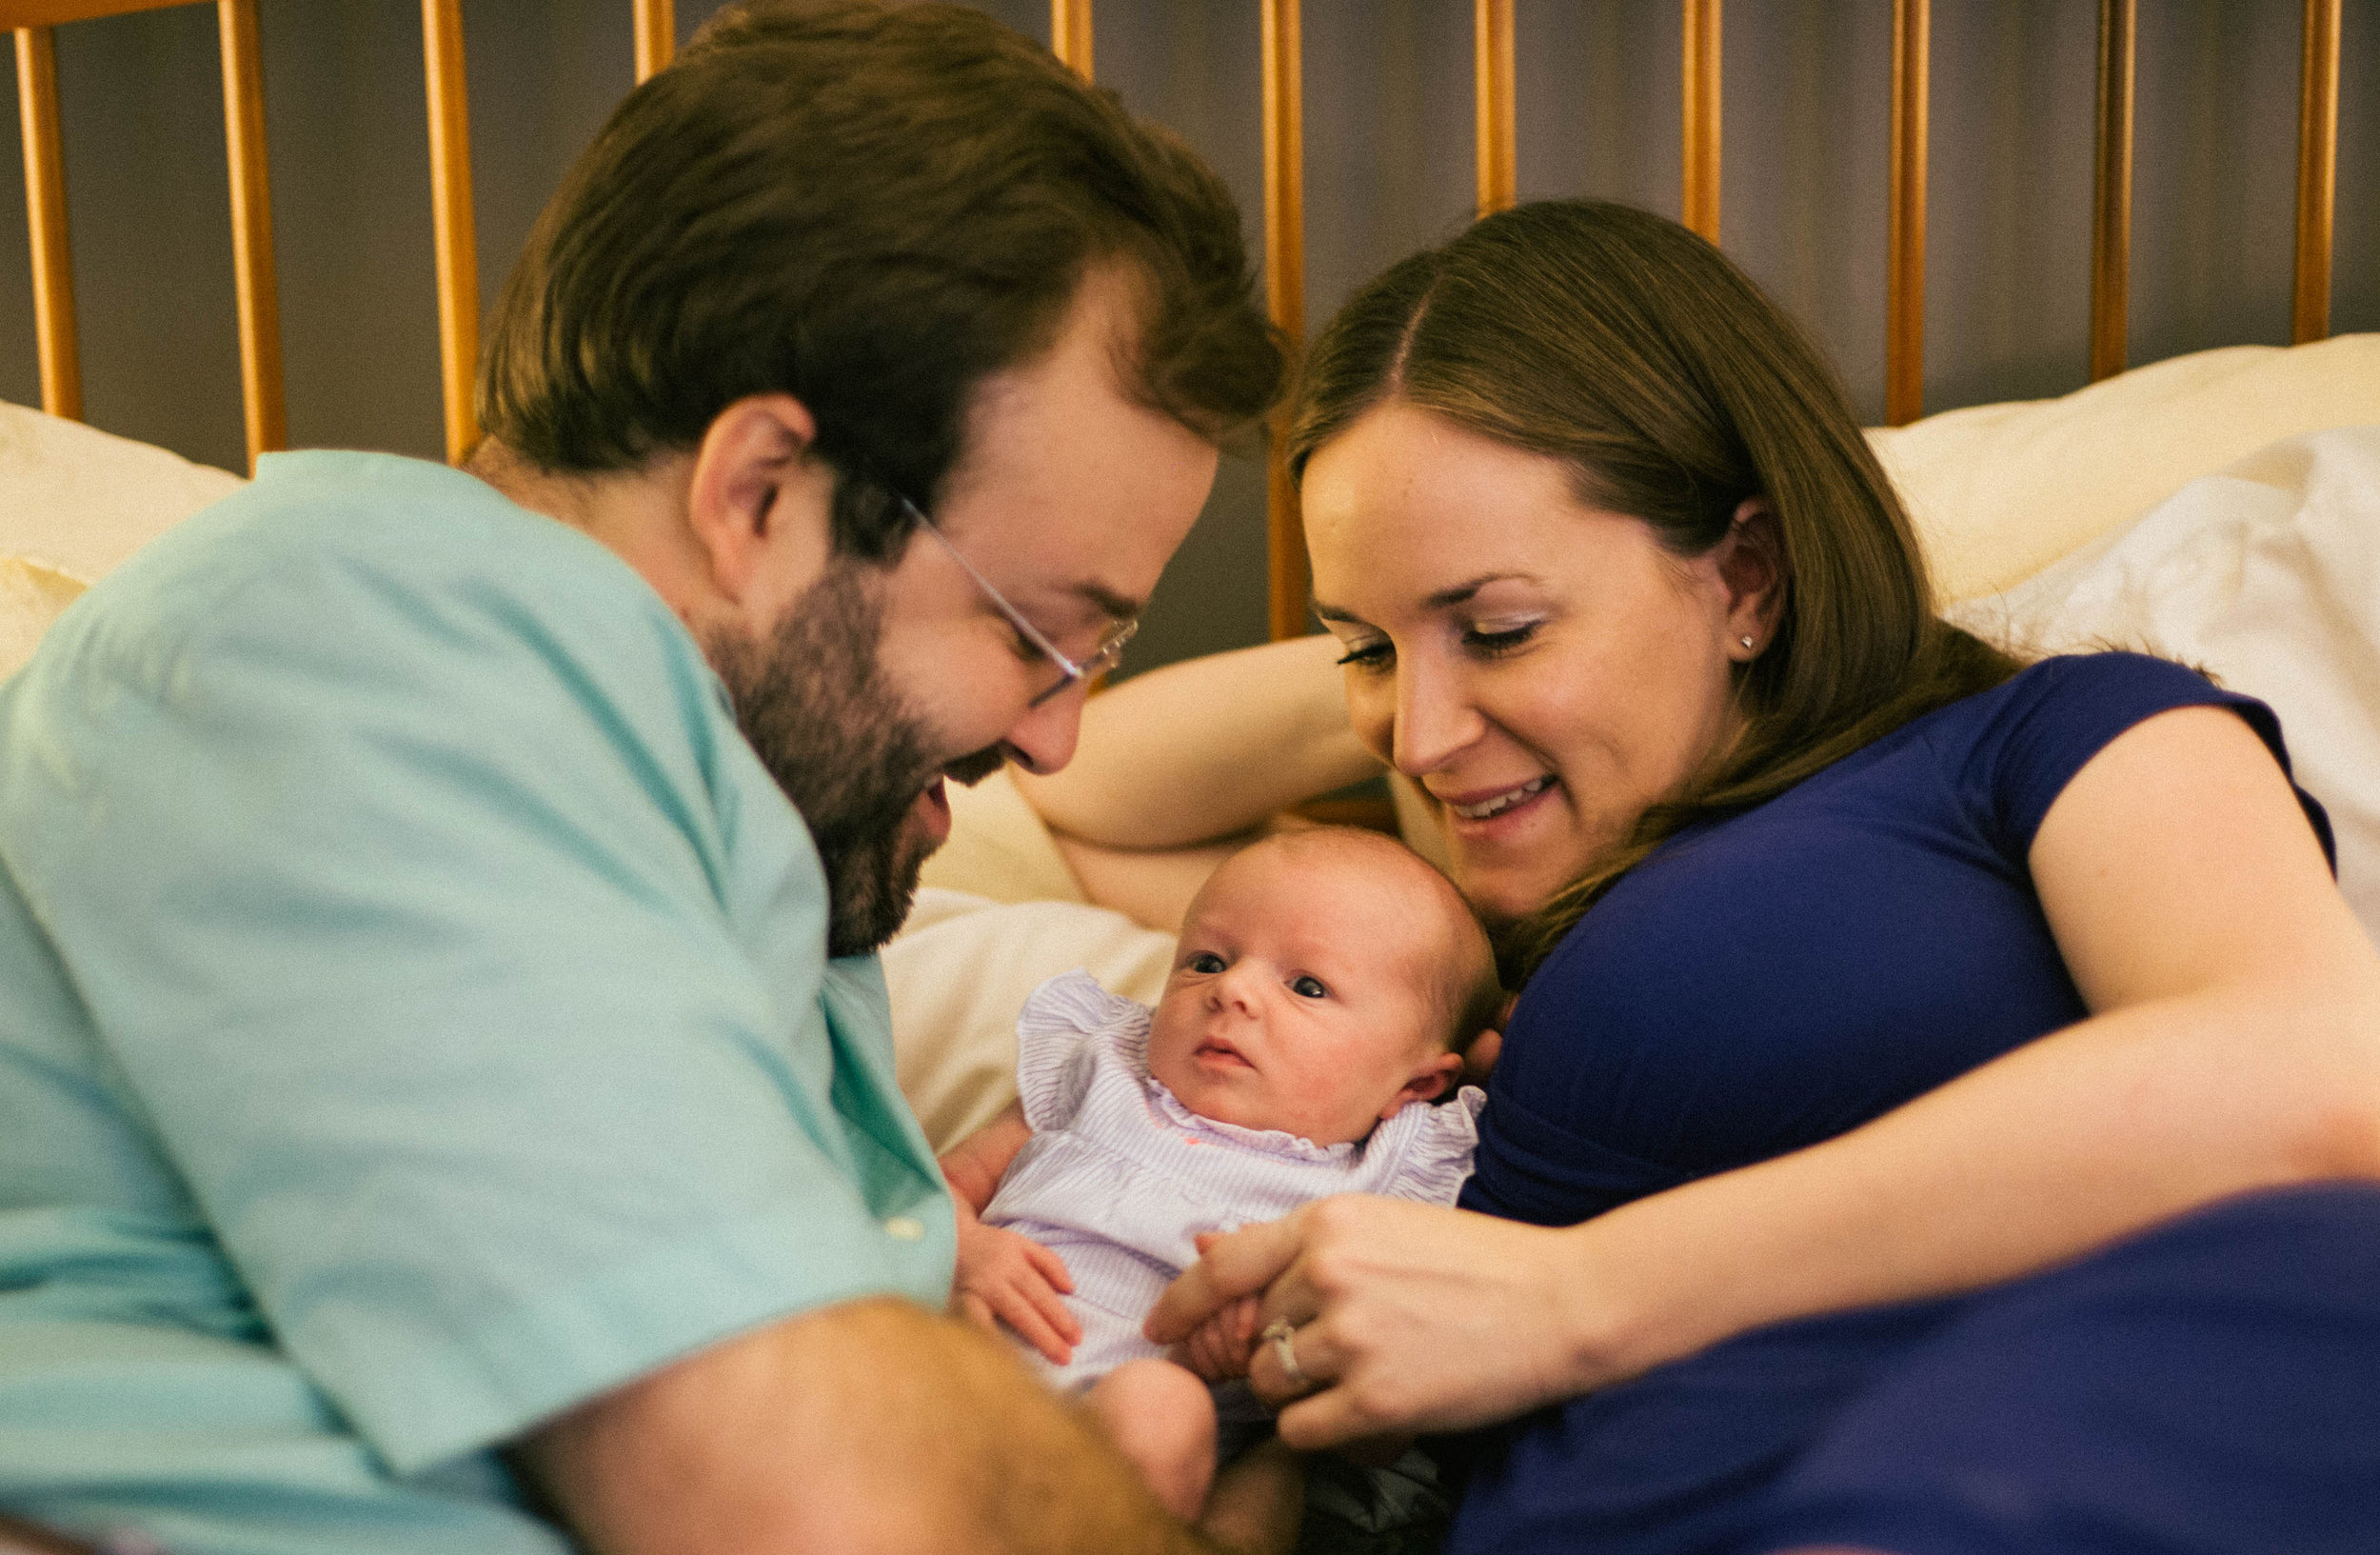 lifestyle newborn photo with parents and baby on bed